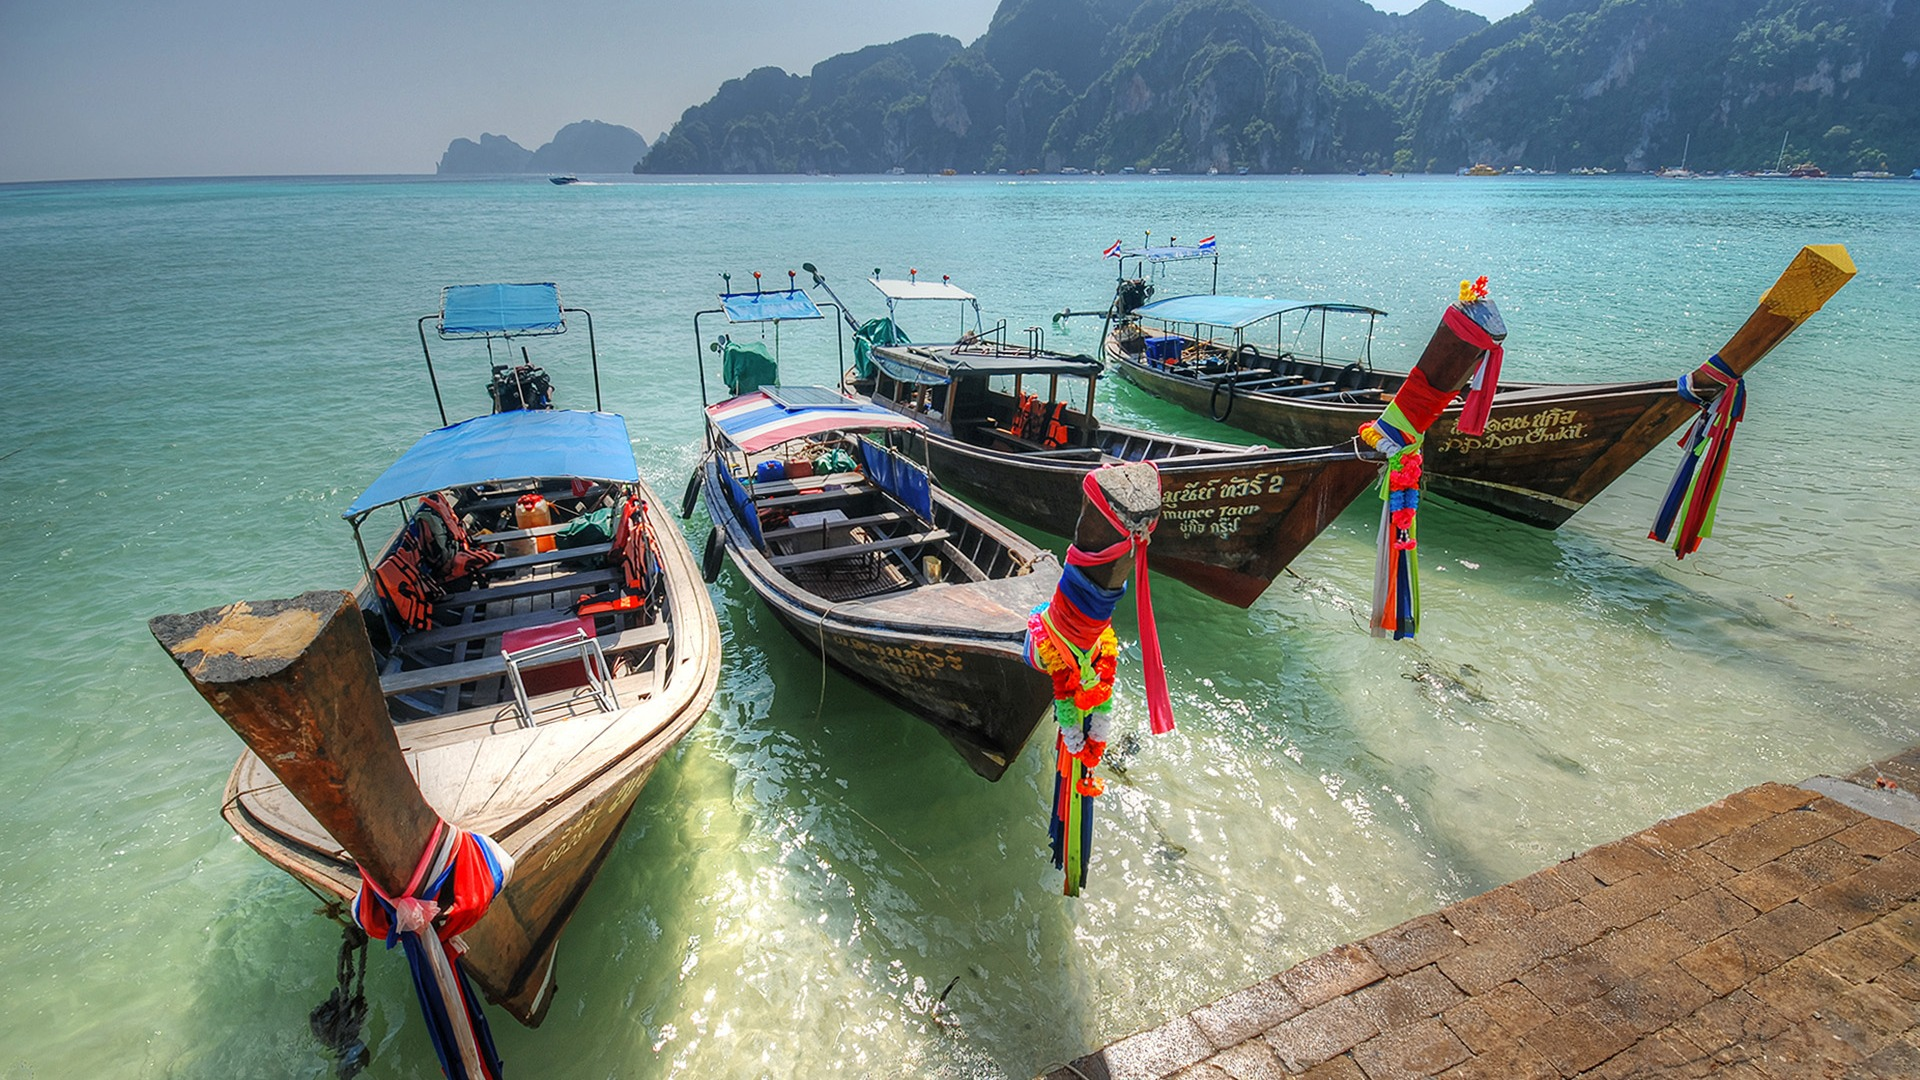 Thailand port 4 longtail boats-Windows 10 Desktop Wallpaper - 1920x1080 wallpaper download